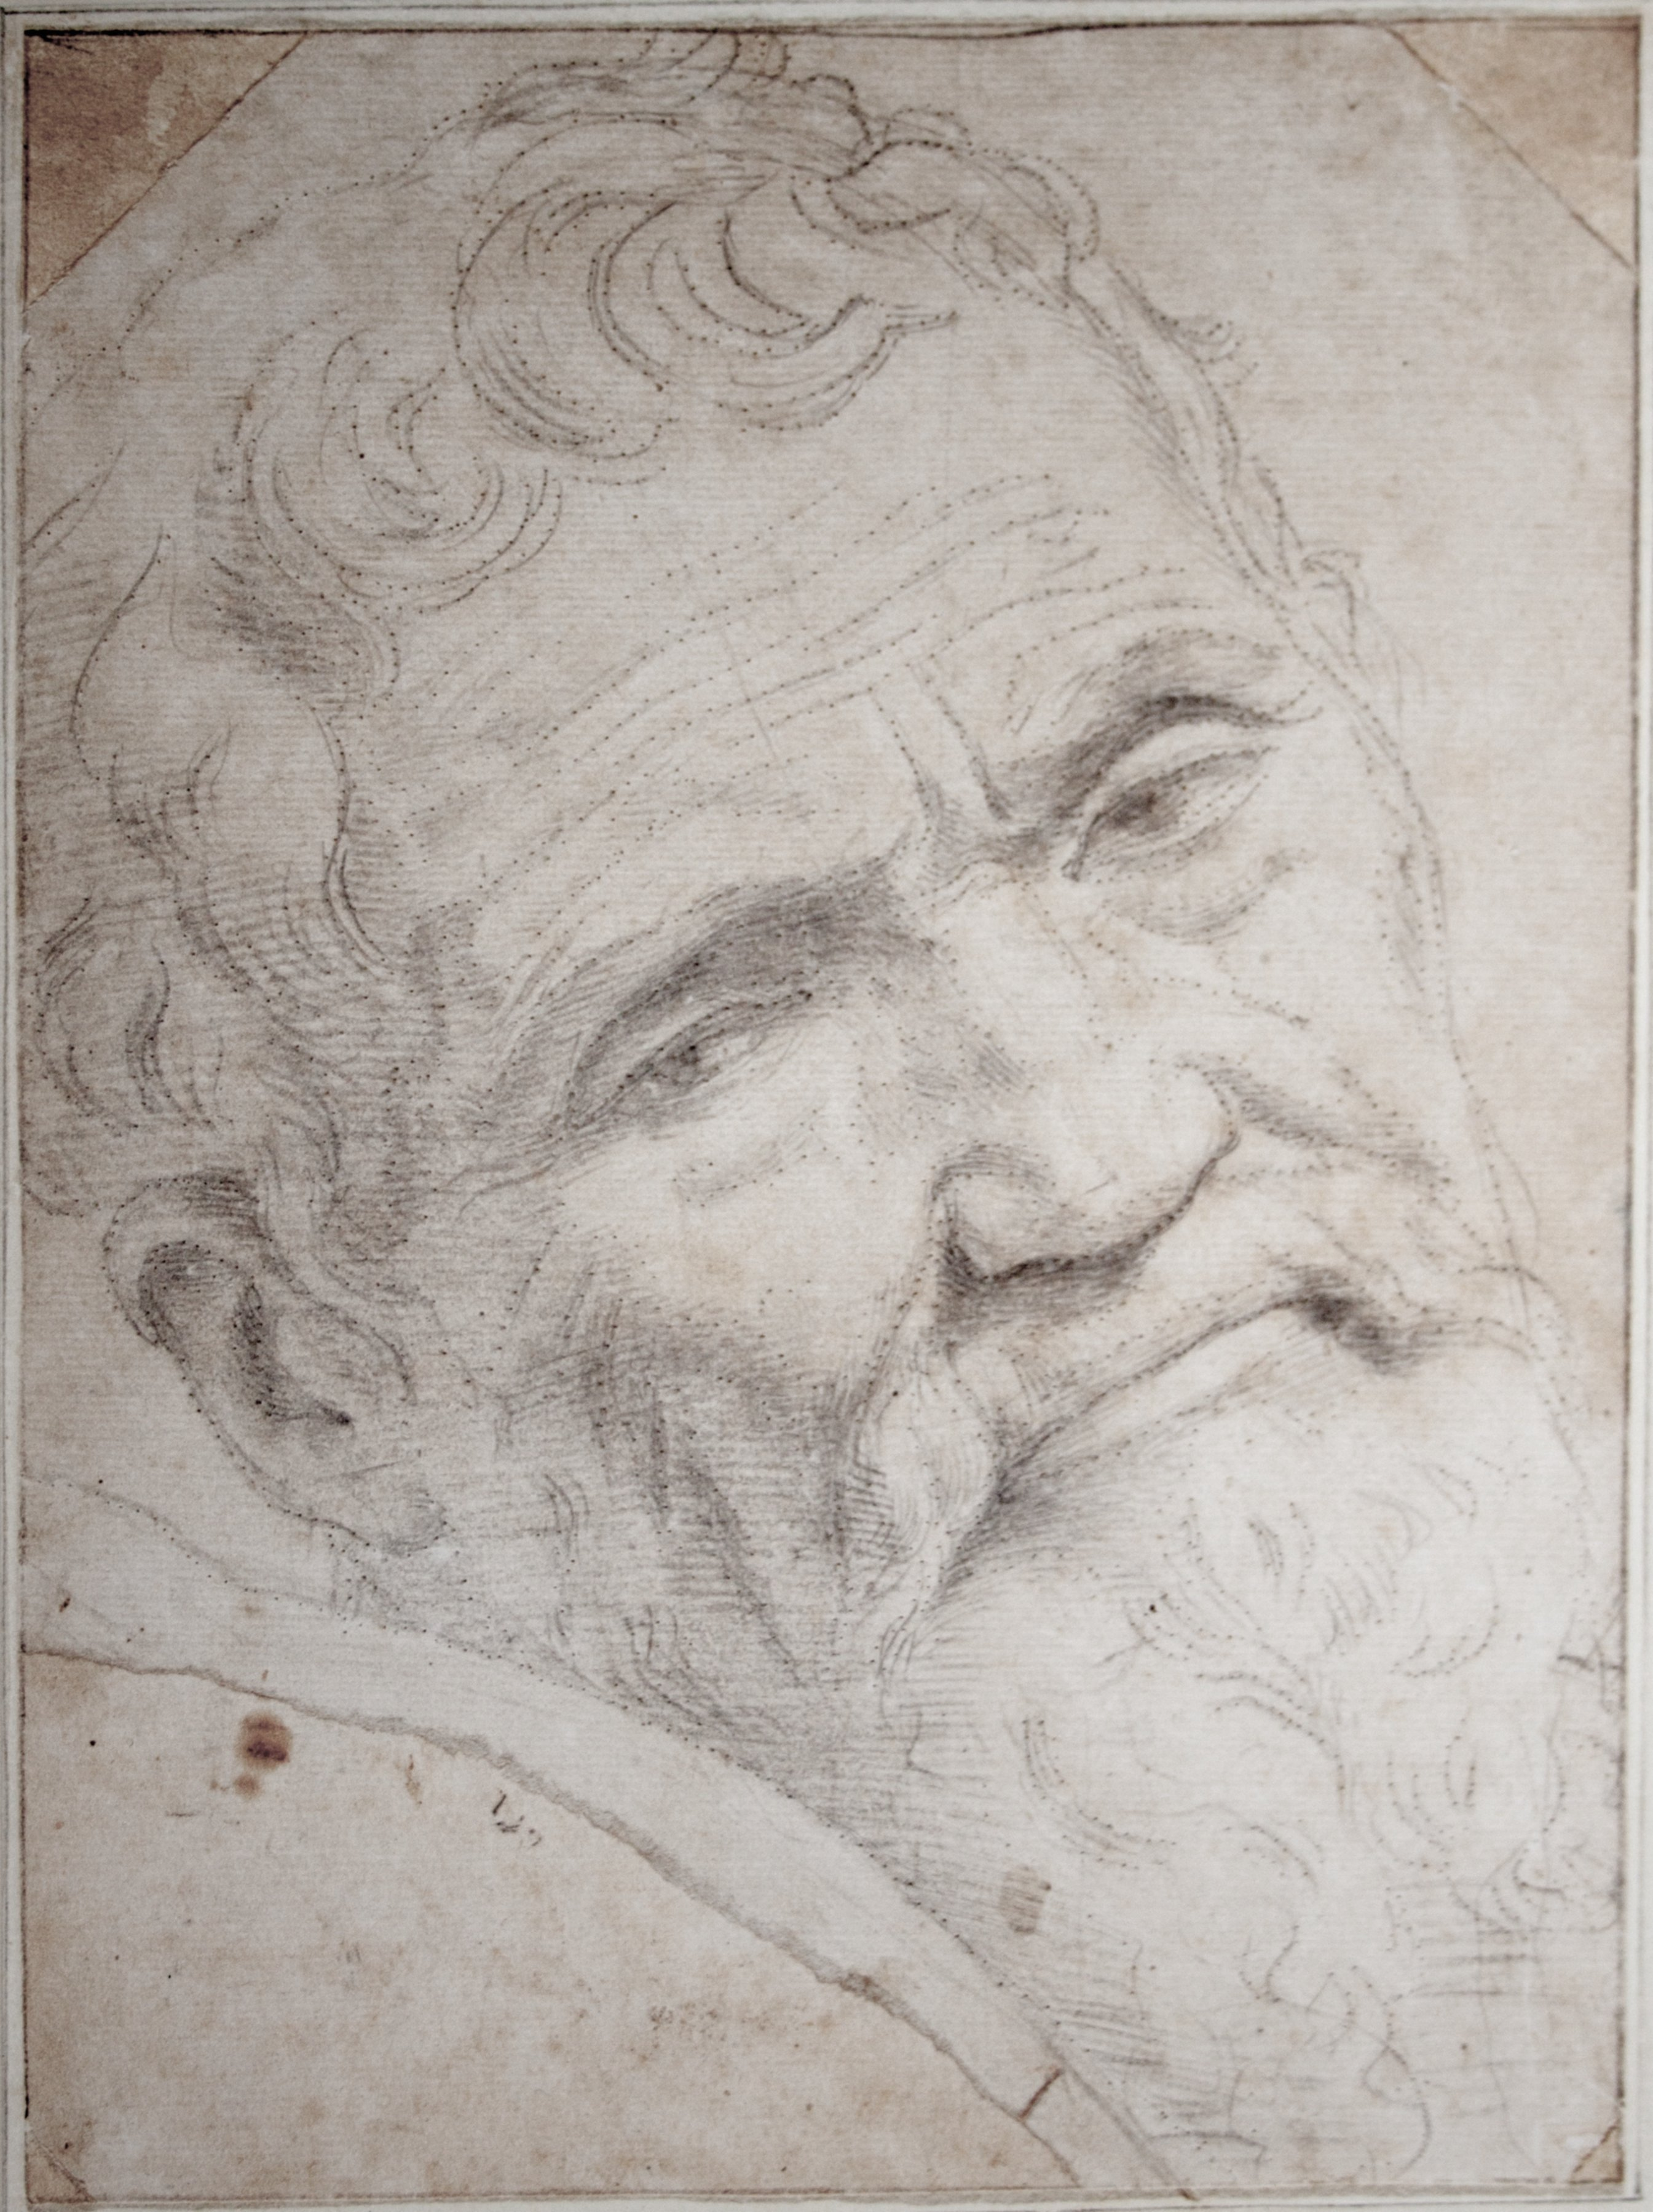 quote by Michelangelo